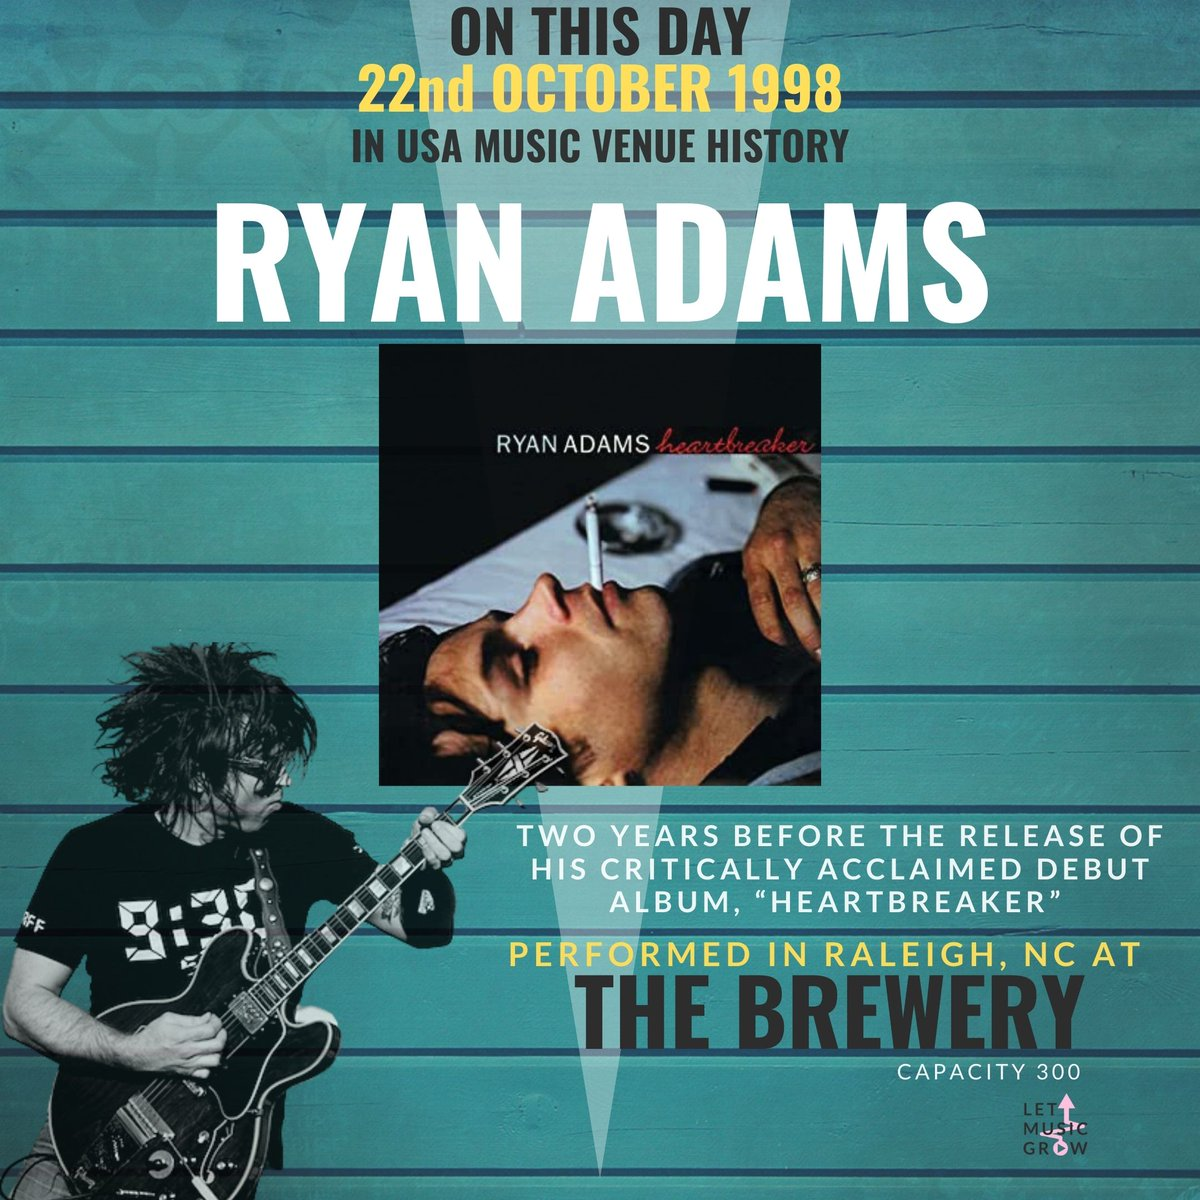 @TheRyanAdams #letmusicgrow #letthemusicplay #wemakeevents #saveourvenues #saveourstages #NIVA #MusicVenueTrust #fyp #onthisday #newmusic #follow #song #independentartist #like #indie #instagood #pop #studio #guitar #repost #indieartist #explore #musicislife #ryanadams https://t.co/gHBL8NNytb